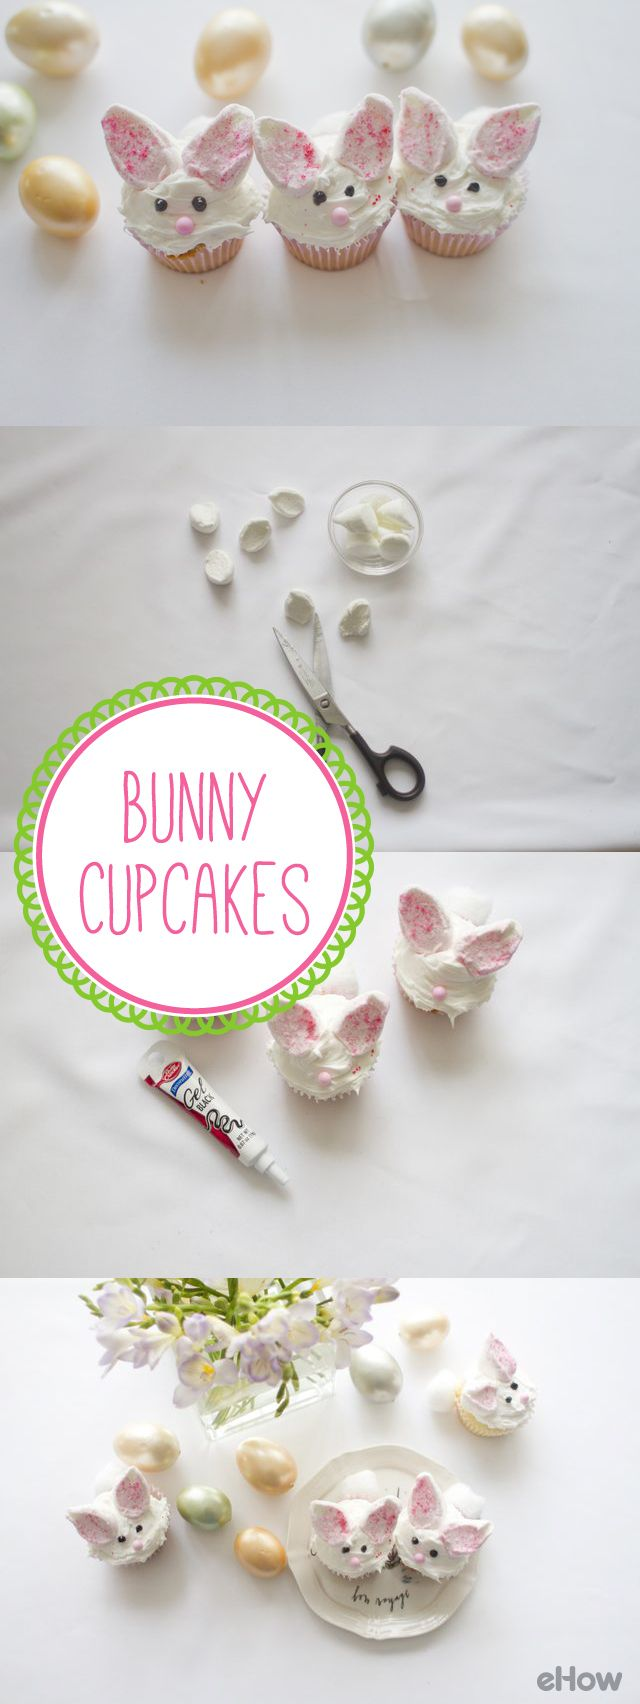 These adorable bunny cupcakes are must for your Easter gathering or any spring occasion that calls for desserts! The cute little ears and cotton tails are a fun way to transform an ordinary cupcake into something irresistibly cute.  You can either use a boxed cupcake mix for this decorating project, or go one step further and make homemade cupcakes…